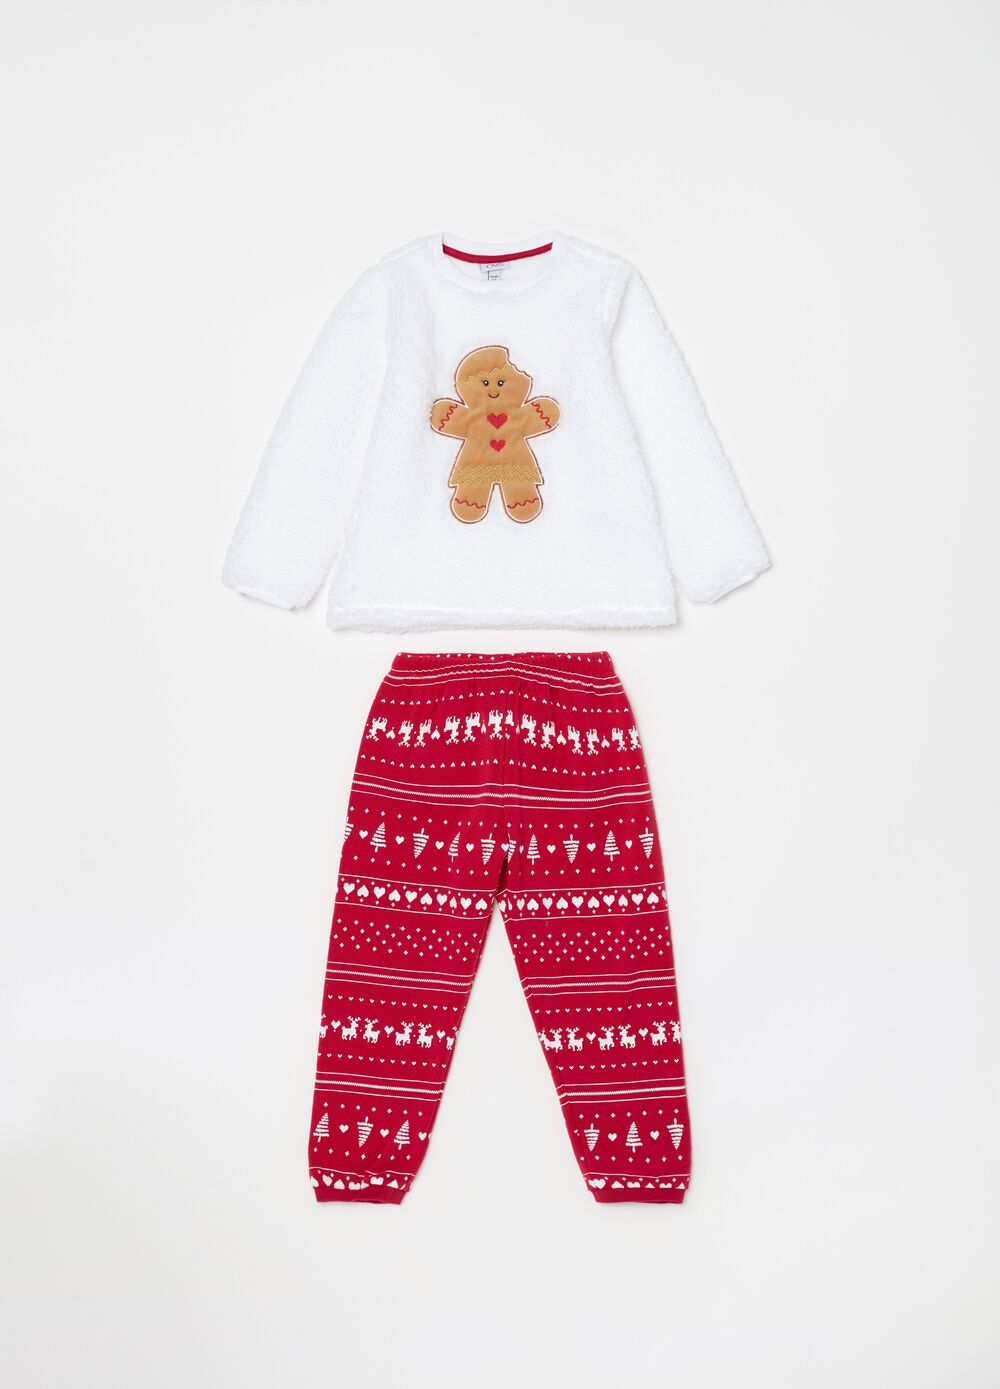 Long pyjamas with Christmas embroidery and pattern